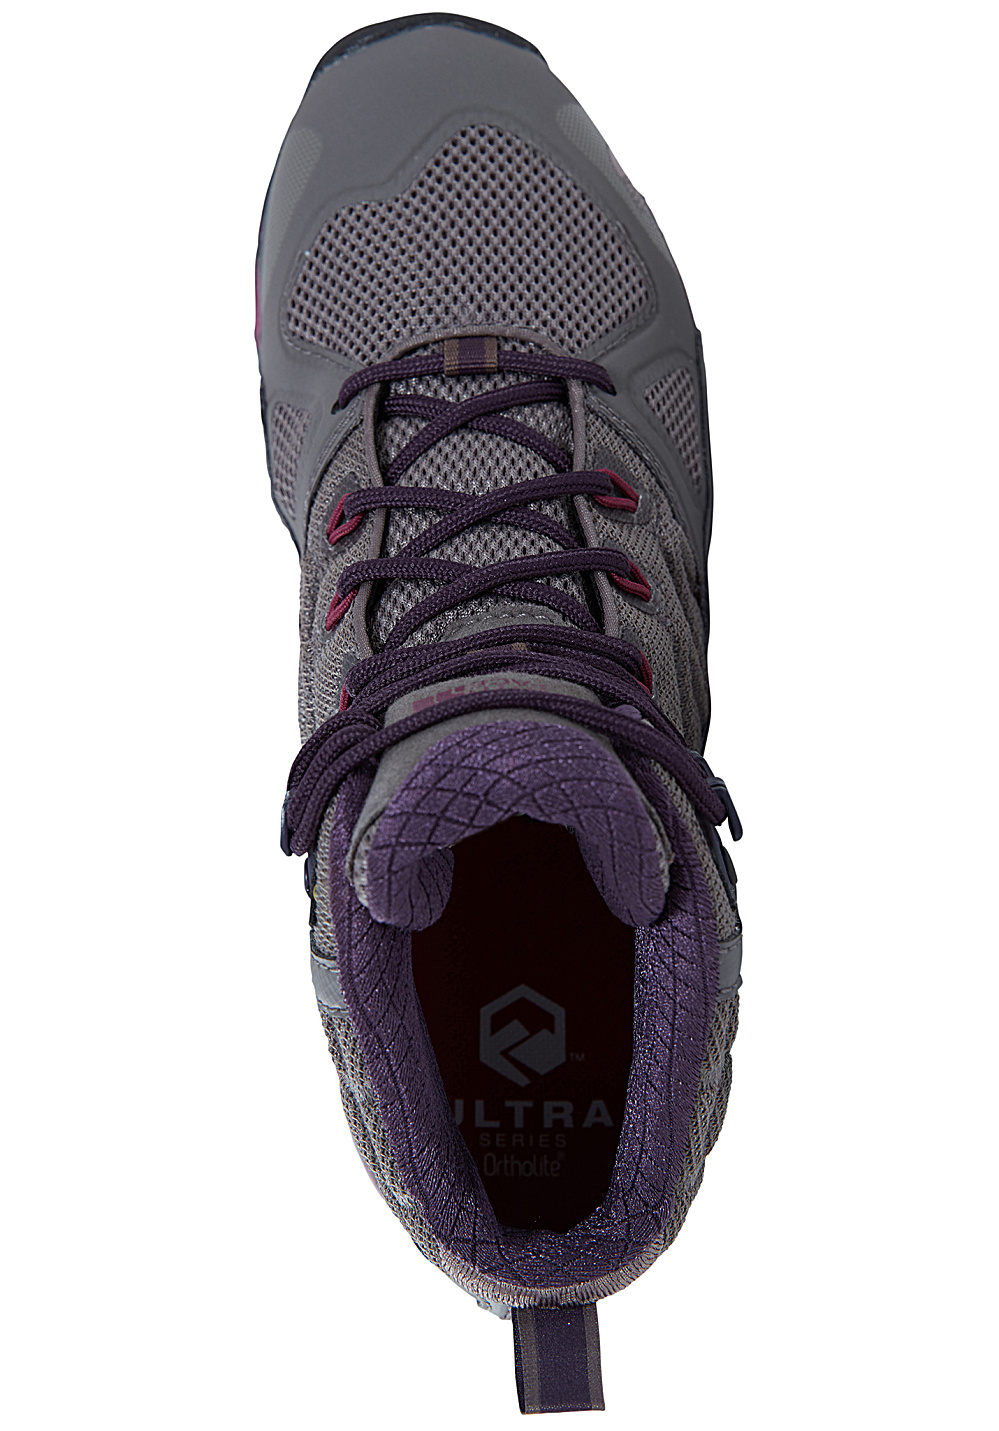 wholesale dealer fa9ef 0efcc THE NORTH FACE Ultra GTX Surround Mid - Trekking Shoes for Women - Grey